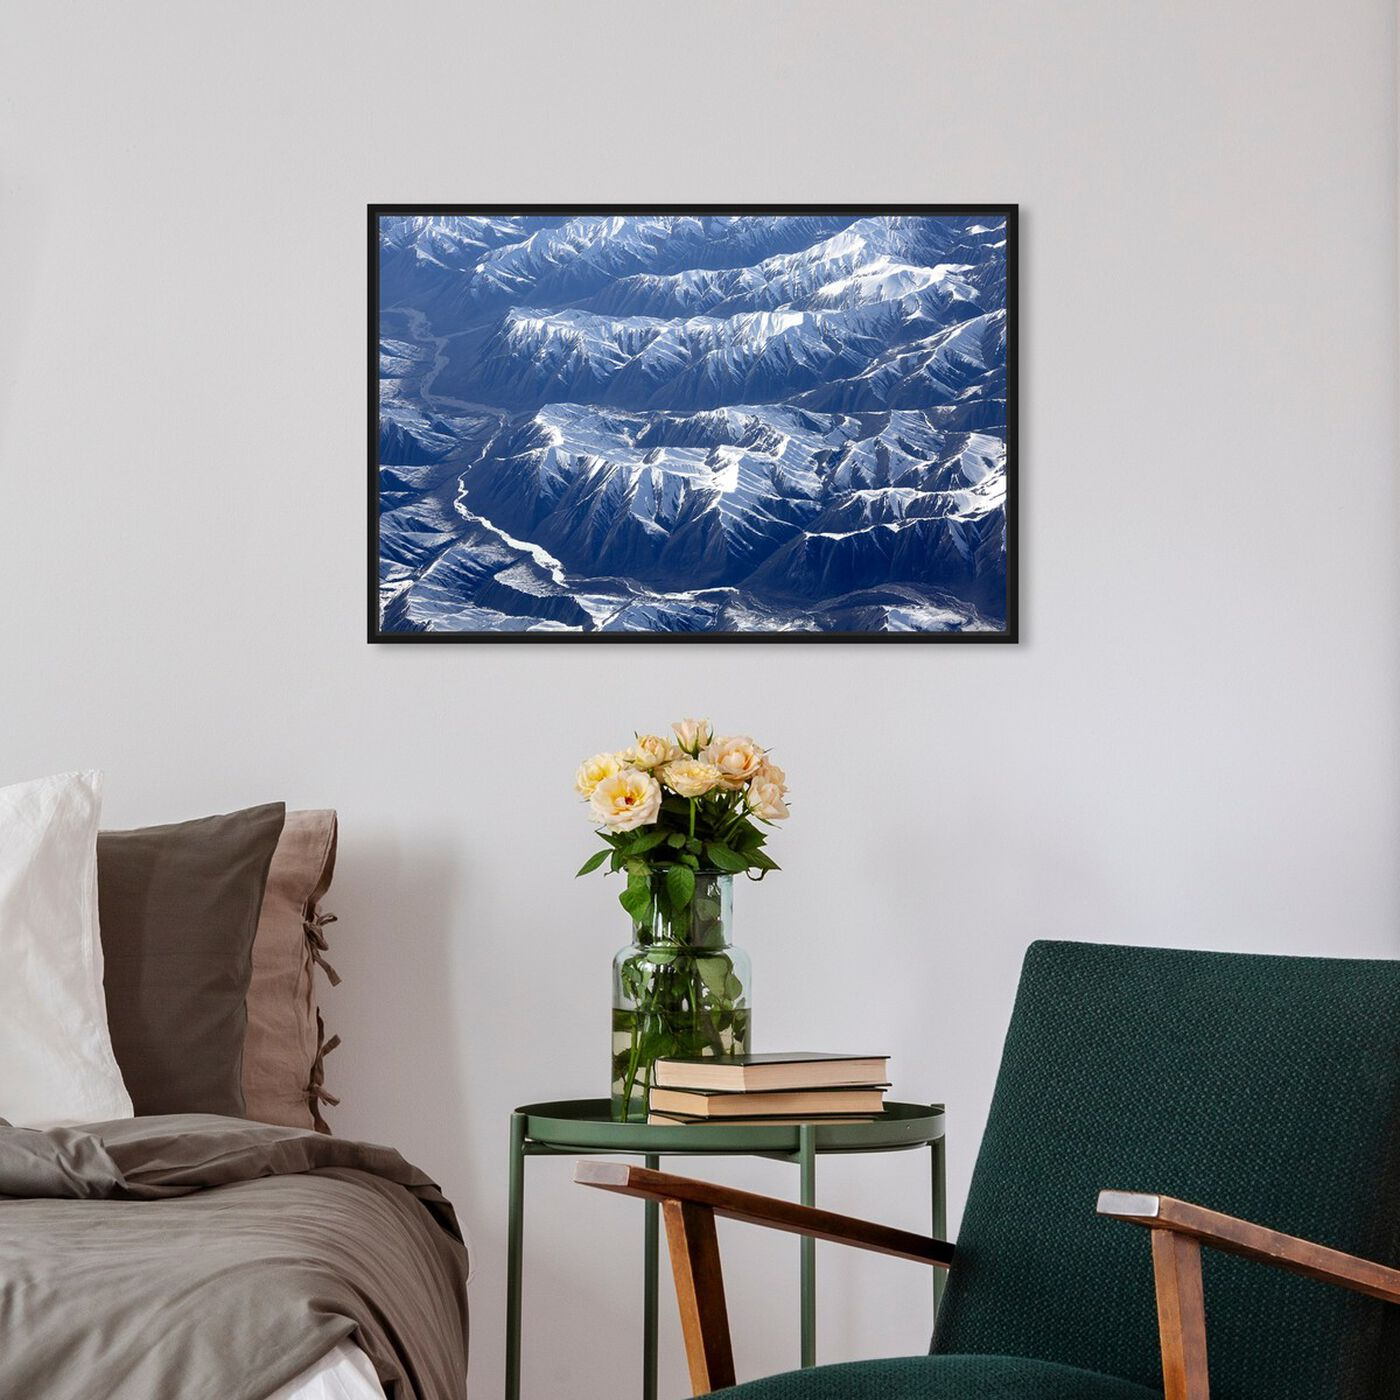 Hanging view of Curro Cardenal - Aero View IV featuring nature and landscape and mountains art.